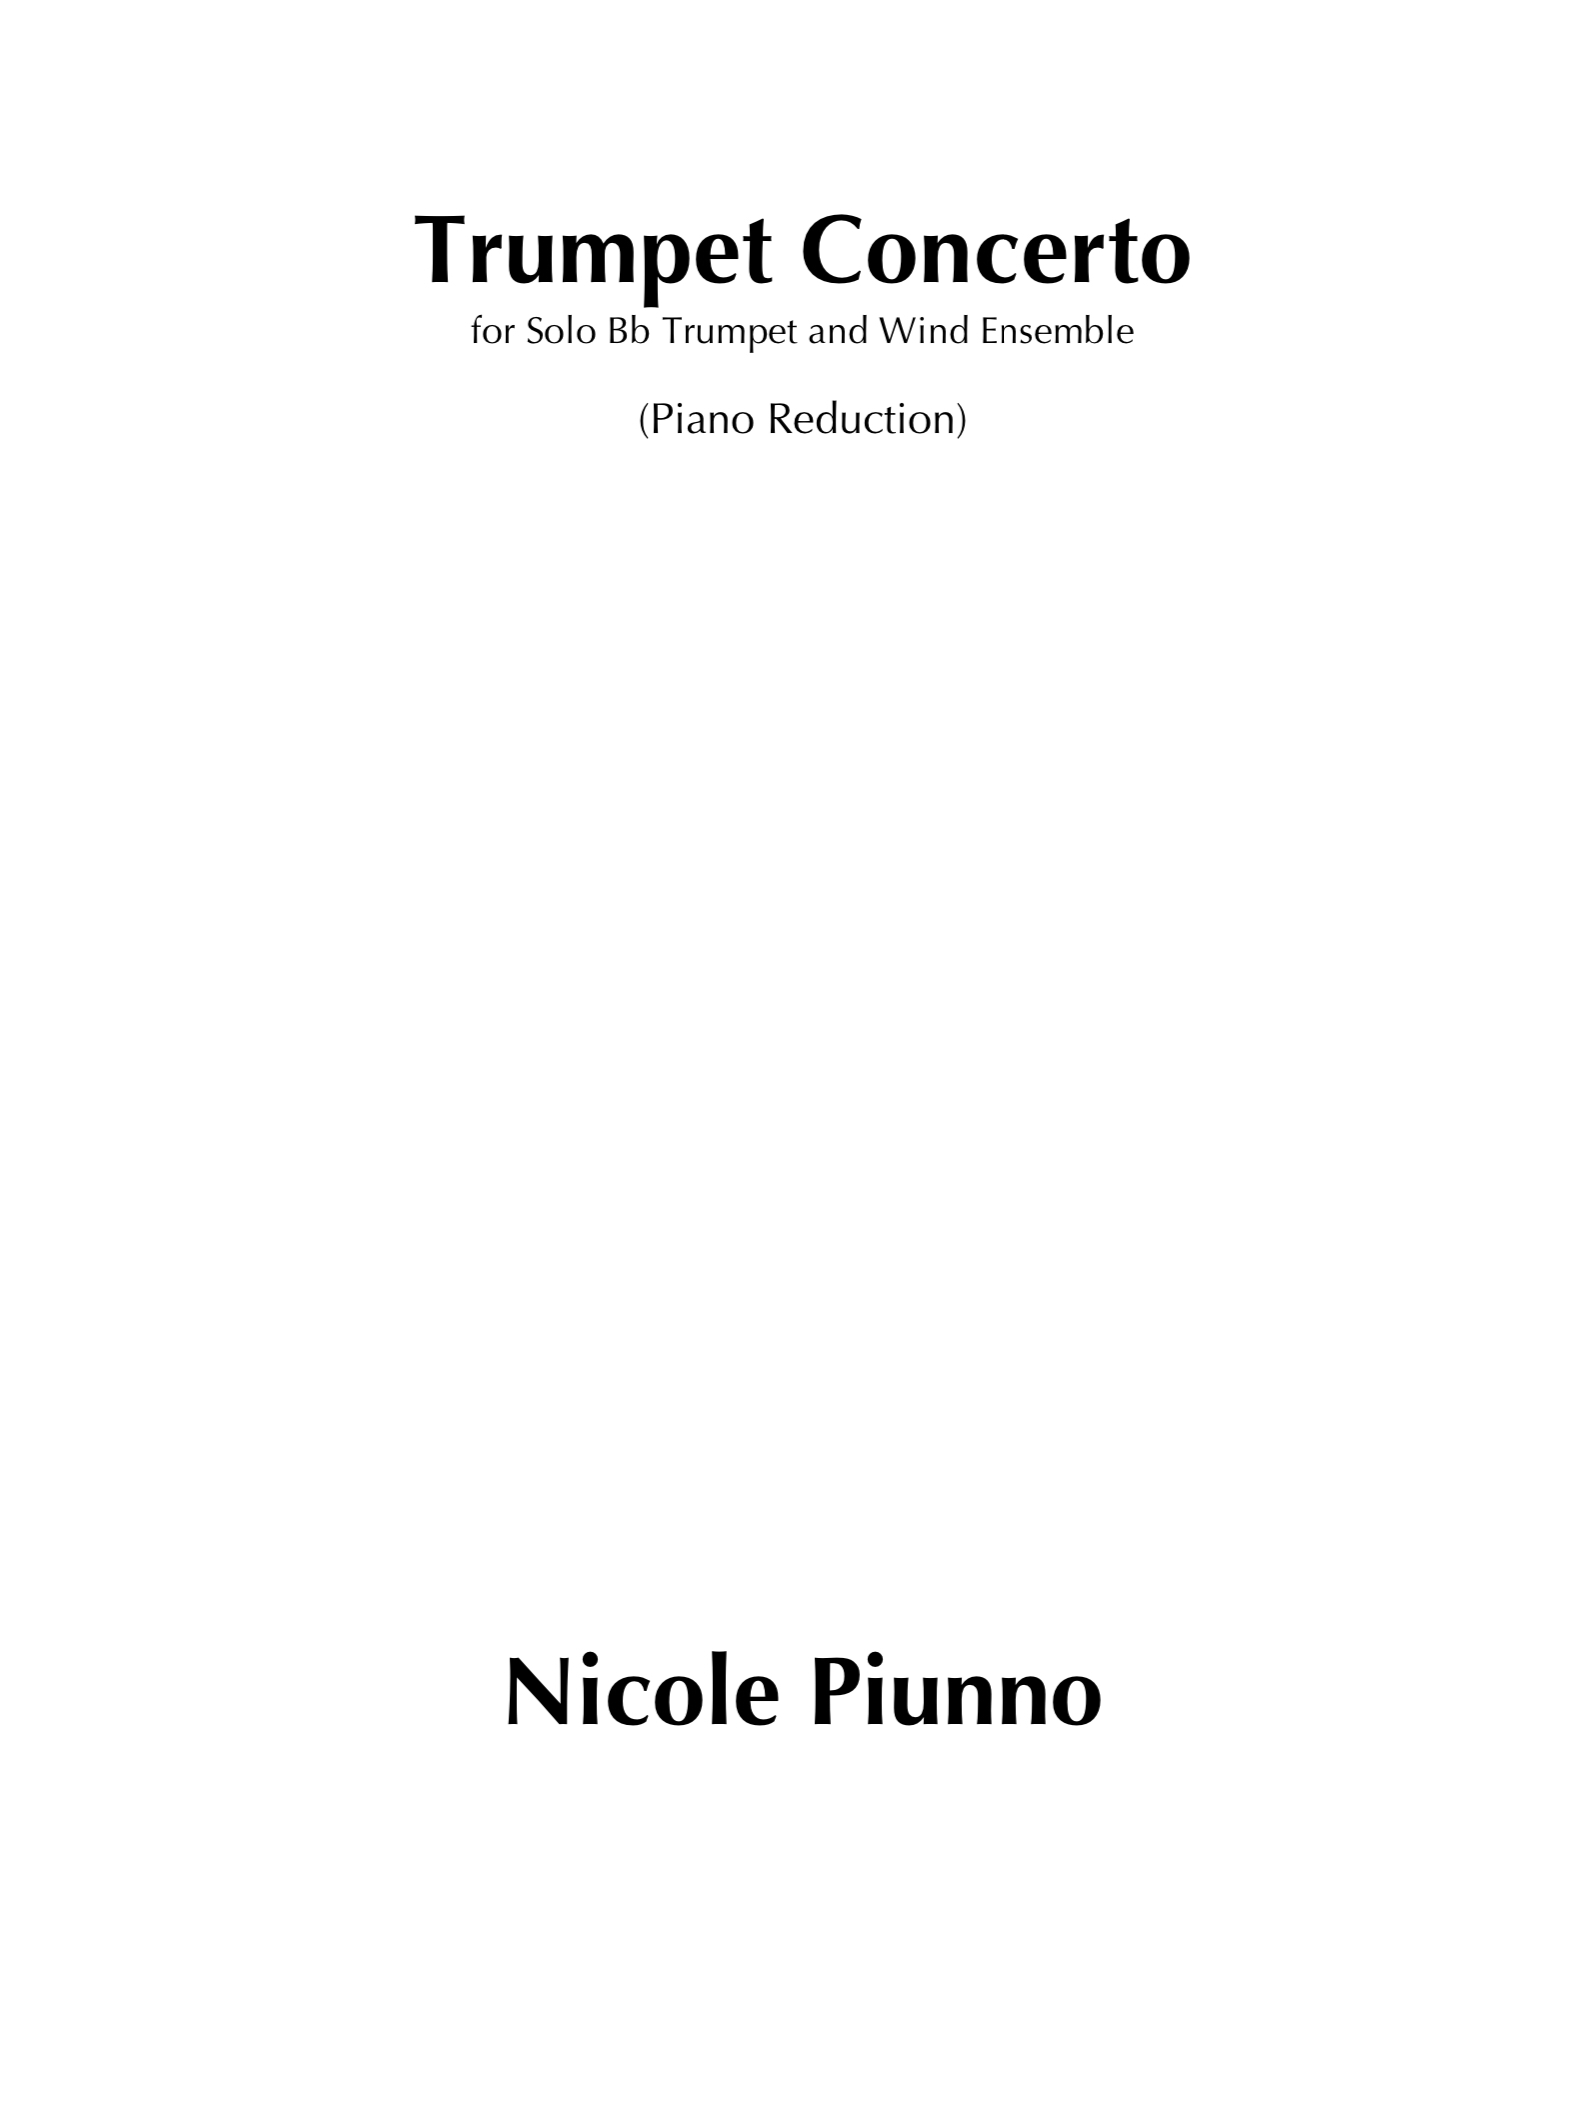 Trumpet Concerto-Piano Reduction by Nicole Piunno